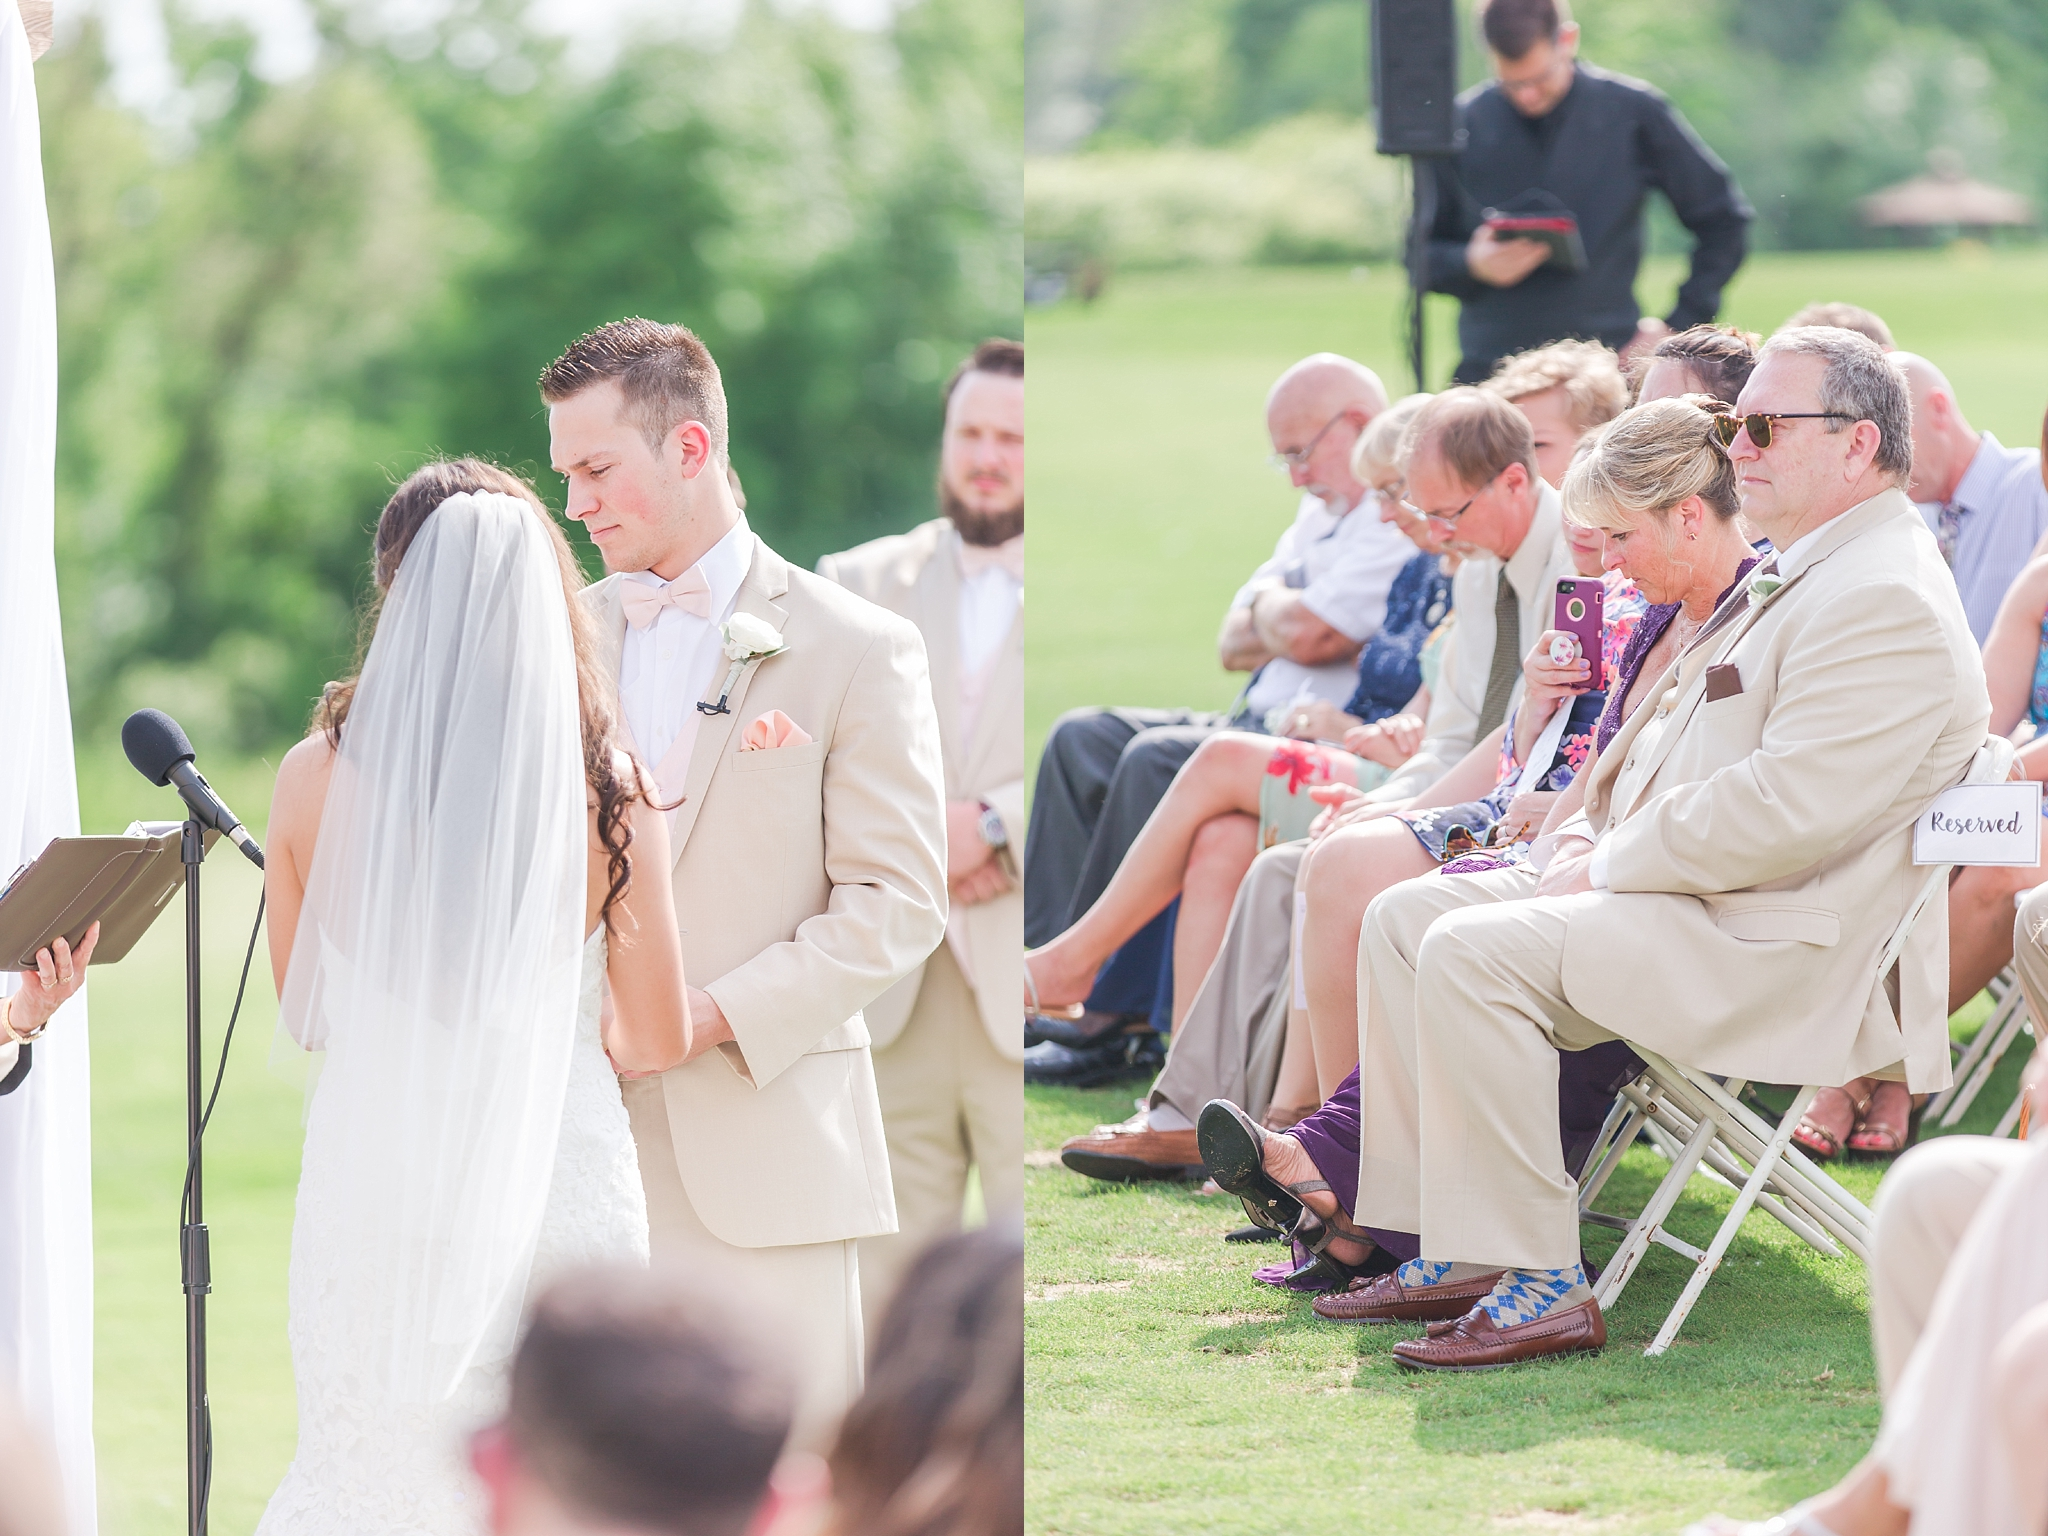 candid-timeless-wedding-photos-at-the-captains-club-in-grand-blanc-michigan-by-courtney-carolyn-photography_0043.jpg